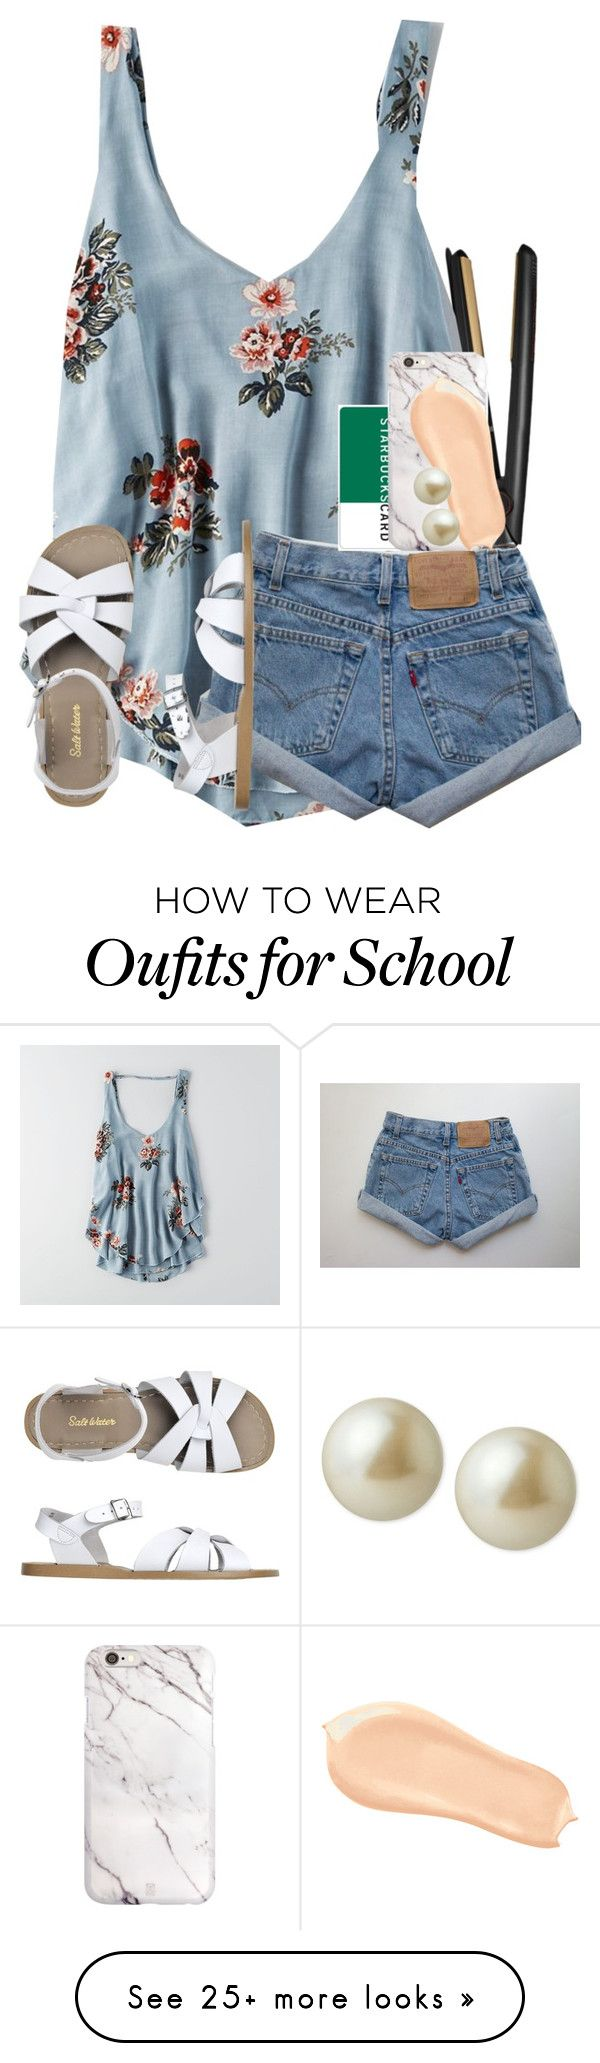 """middle school stinks."" by ellaswiftie13 on Polyvore featuring GHD, American Eagle Outfitters, Toast, Too Faced Cosmetics and Carolee"